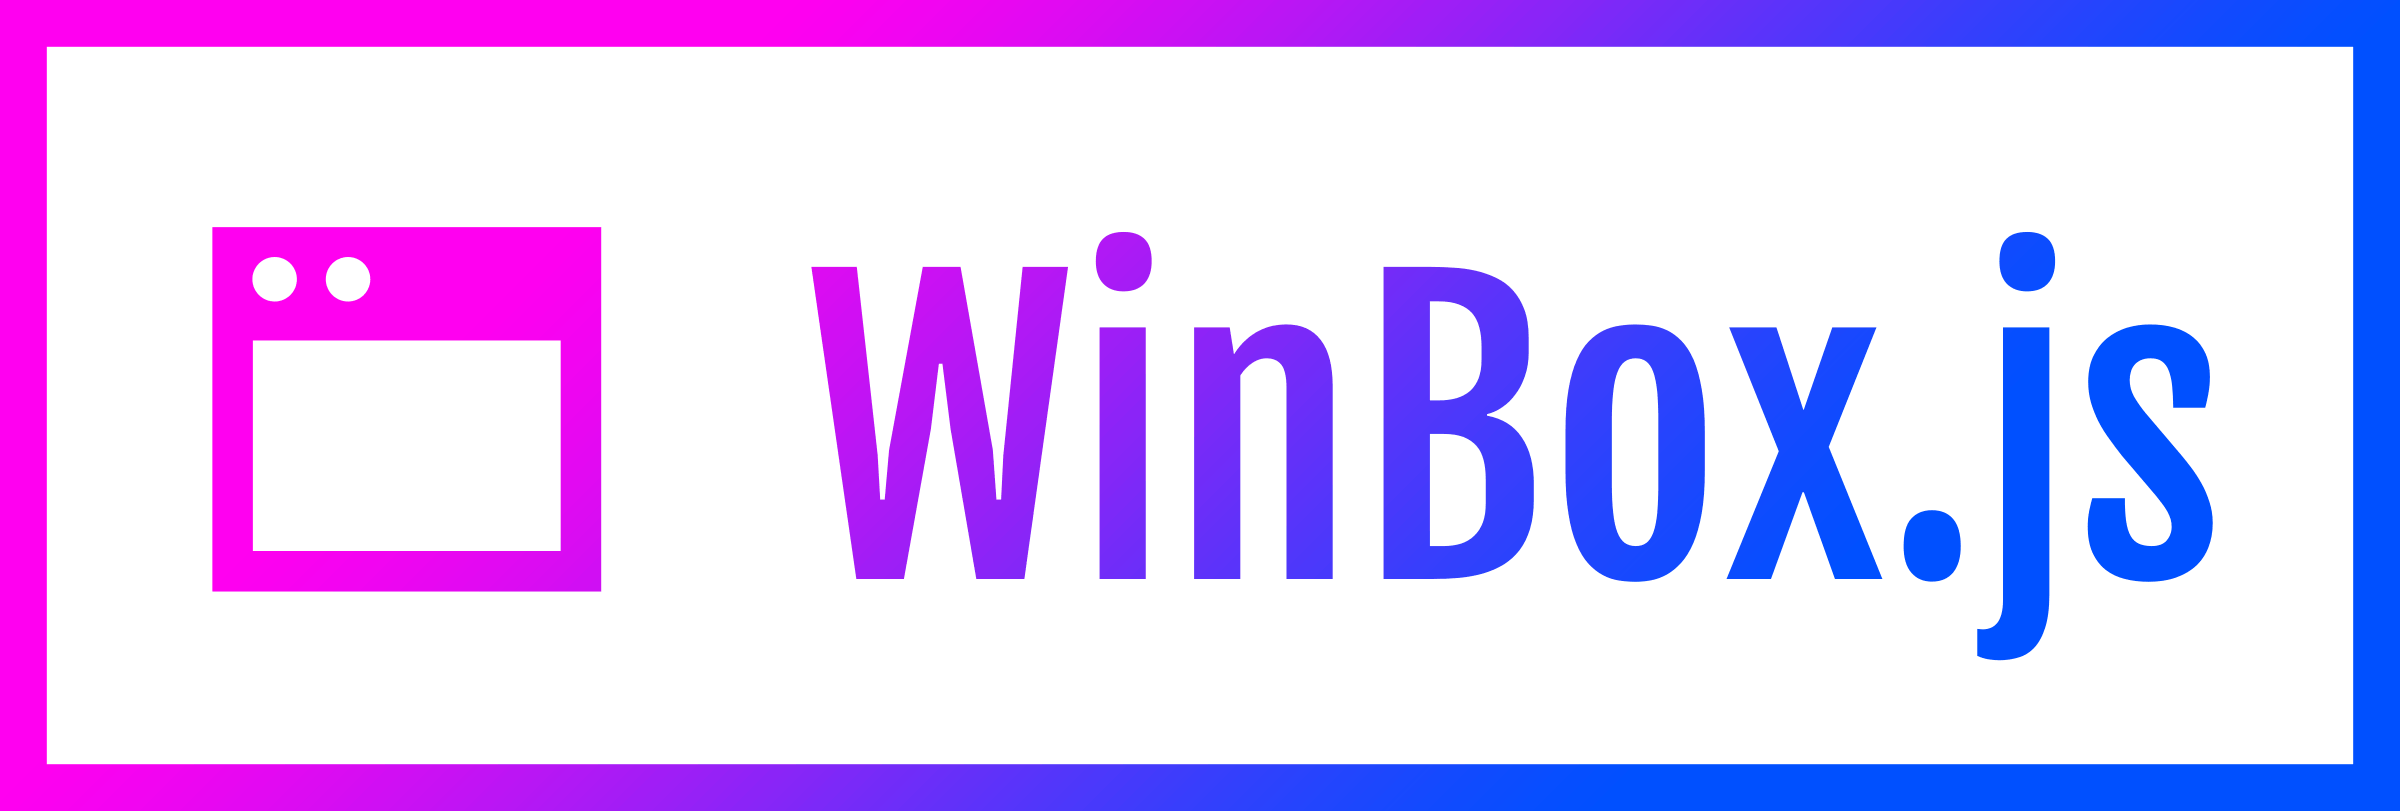 WinBox.js: HTML5 Window Manager for the Web.